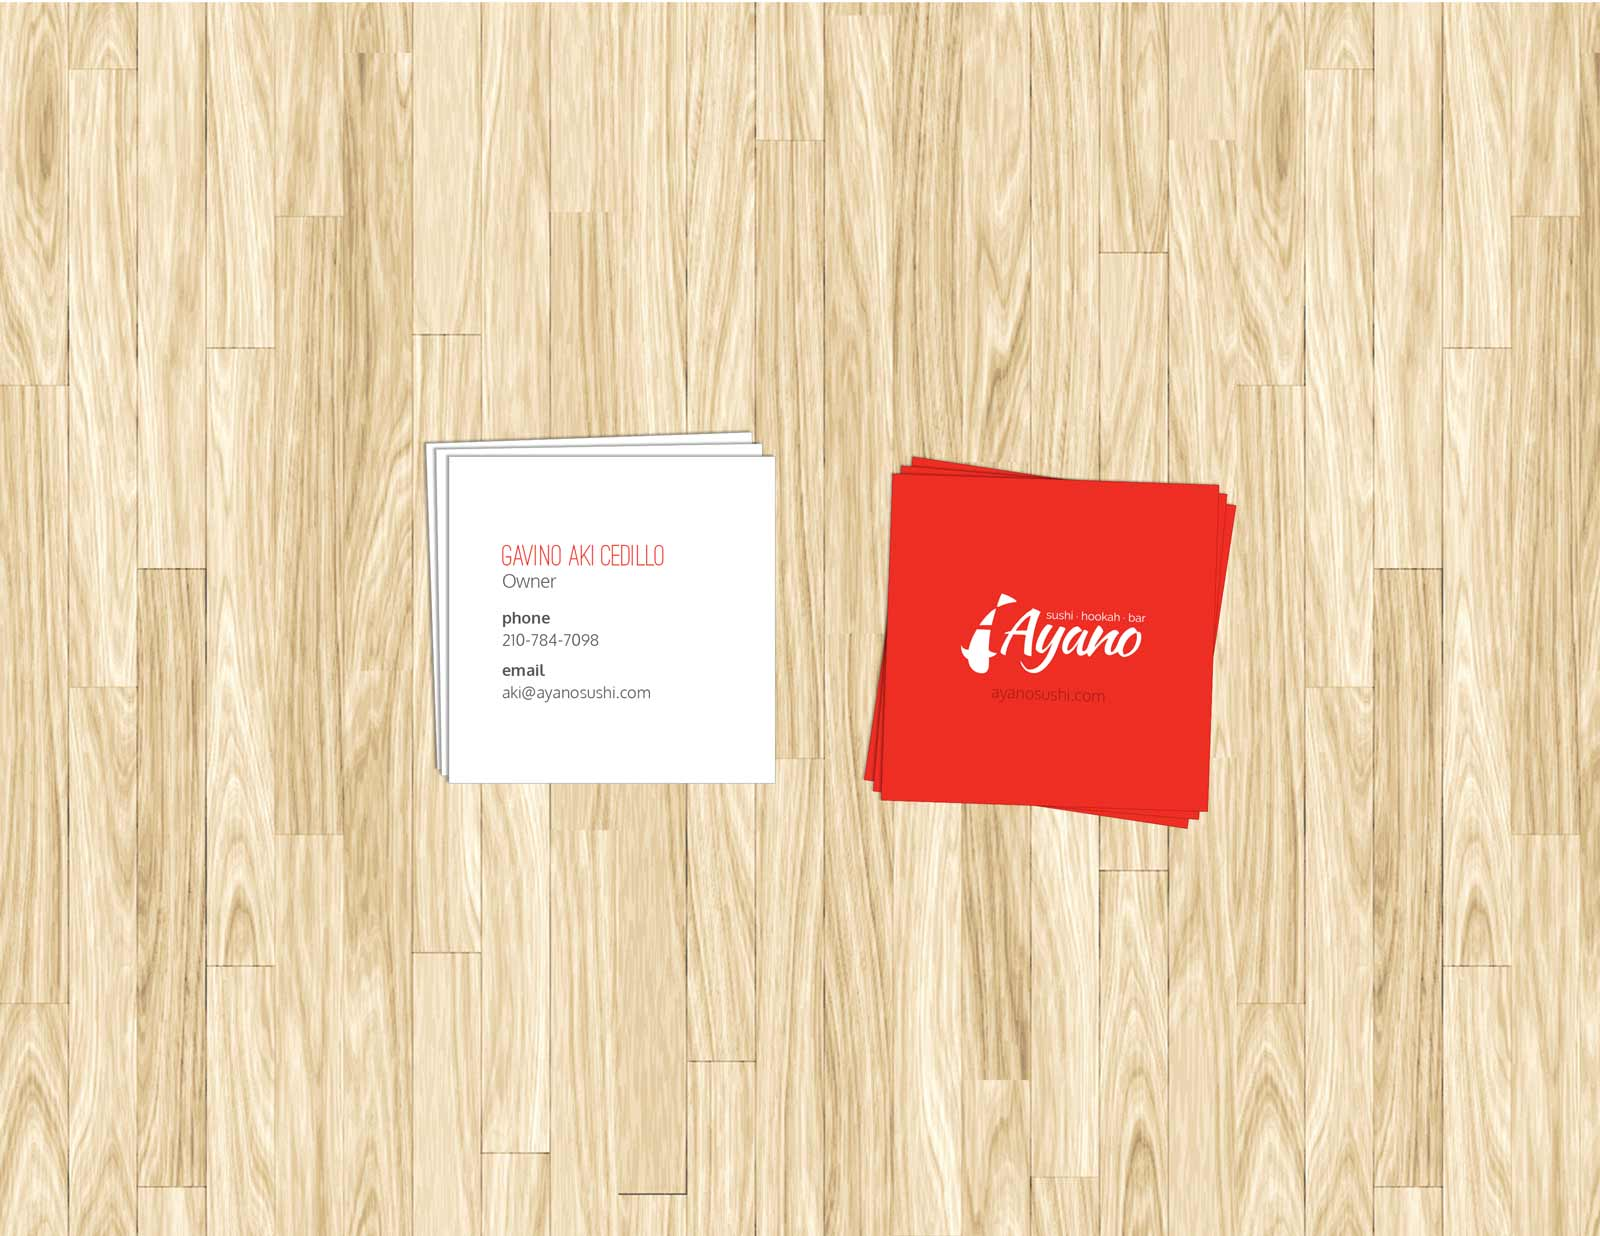 Tips for designing a great business card concept incarnate ayano sushi business cards reheart Choice Image